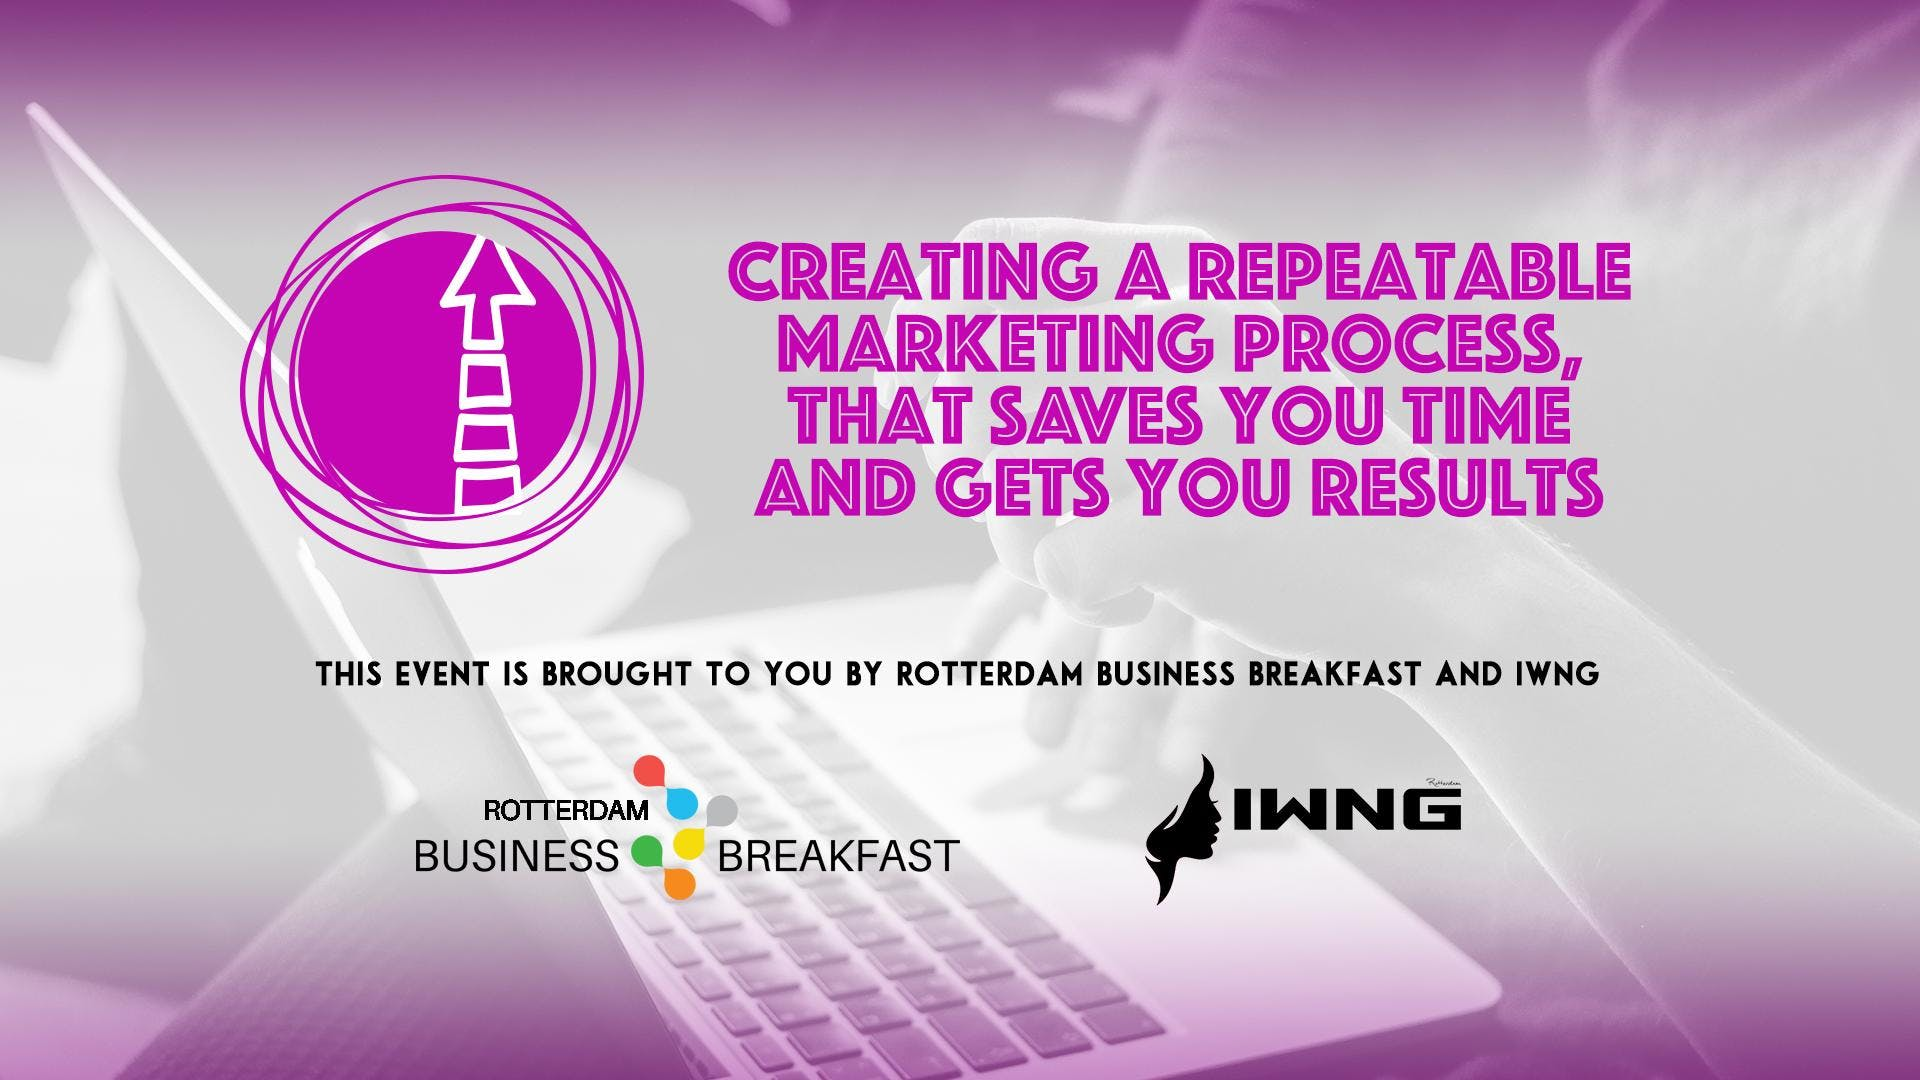 Creating a Repeatable Marketing Process That Saves You Time and Gets You Results.